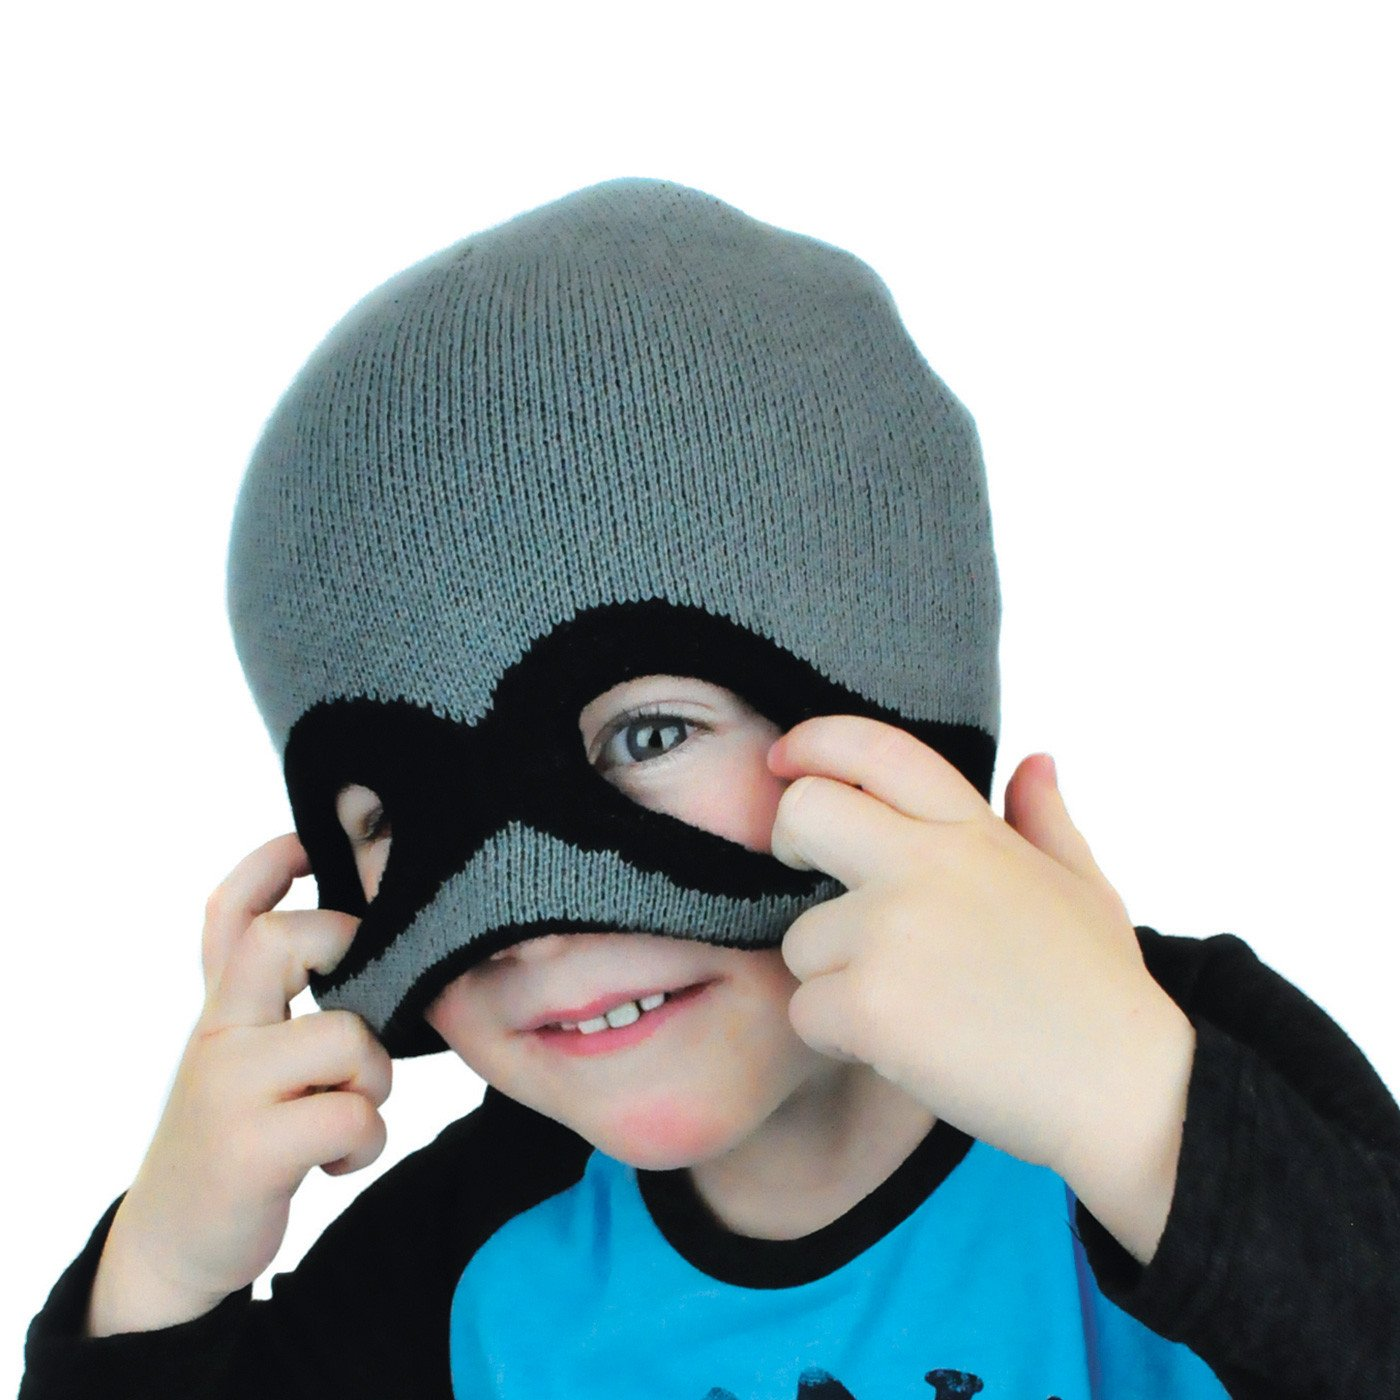 5d169184c91 Amazon.com  Neon Eaters Boys Knit Bandit Mask Beanie - Warm Kids ski  Snowboard Winter Fun Cute Christmas  Clothing